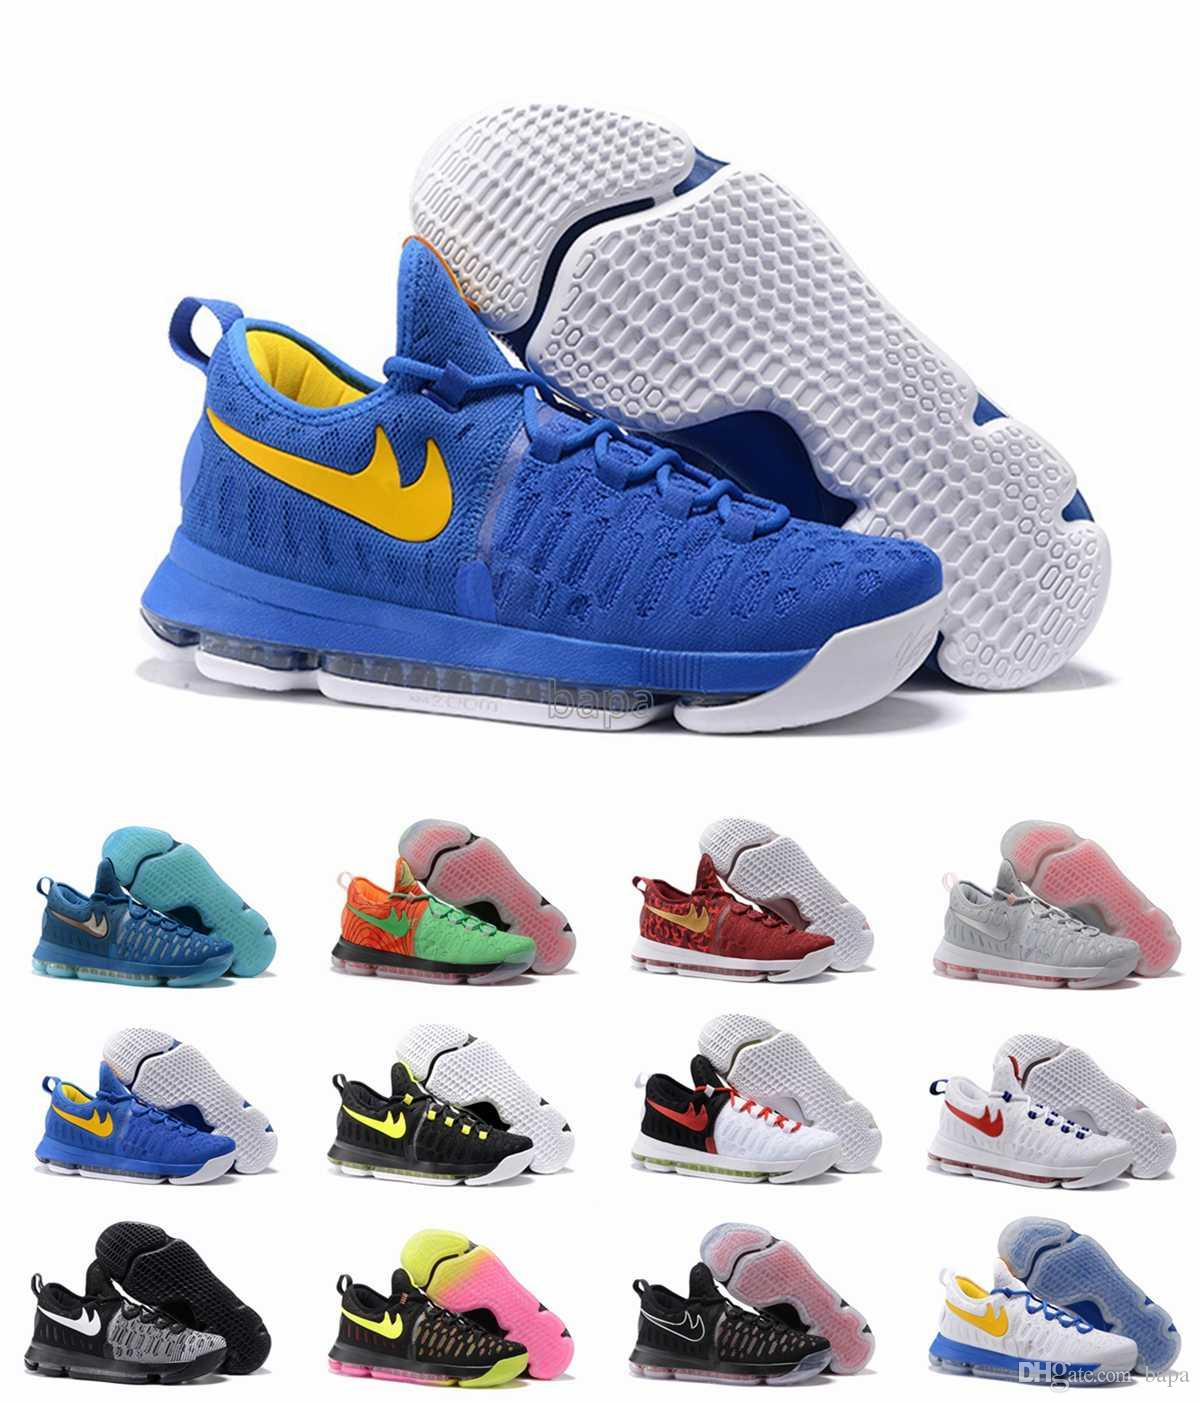 Nike Warriors Shoes